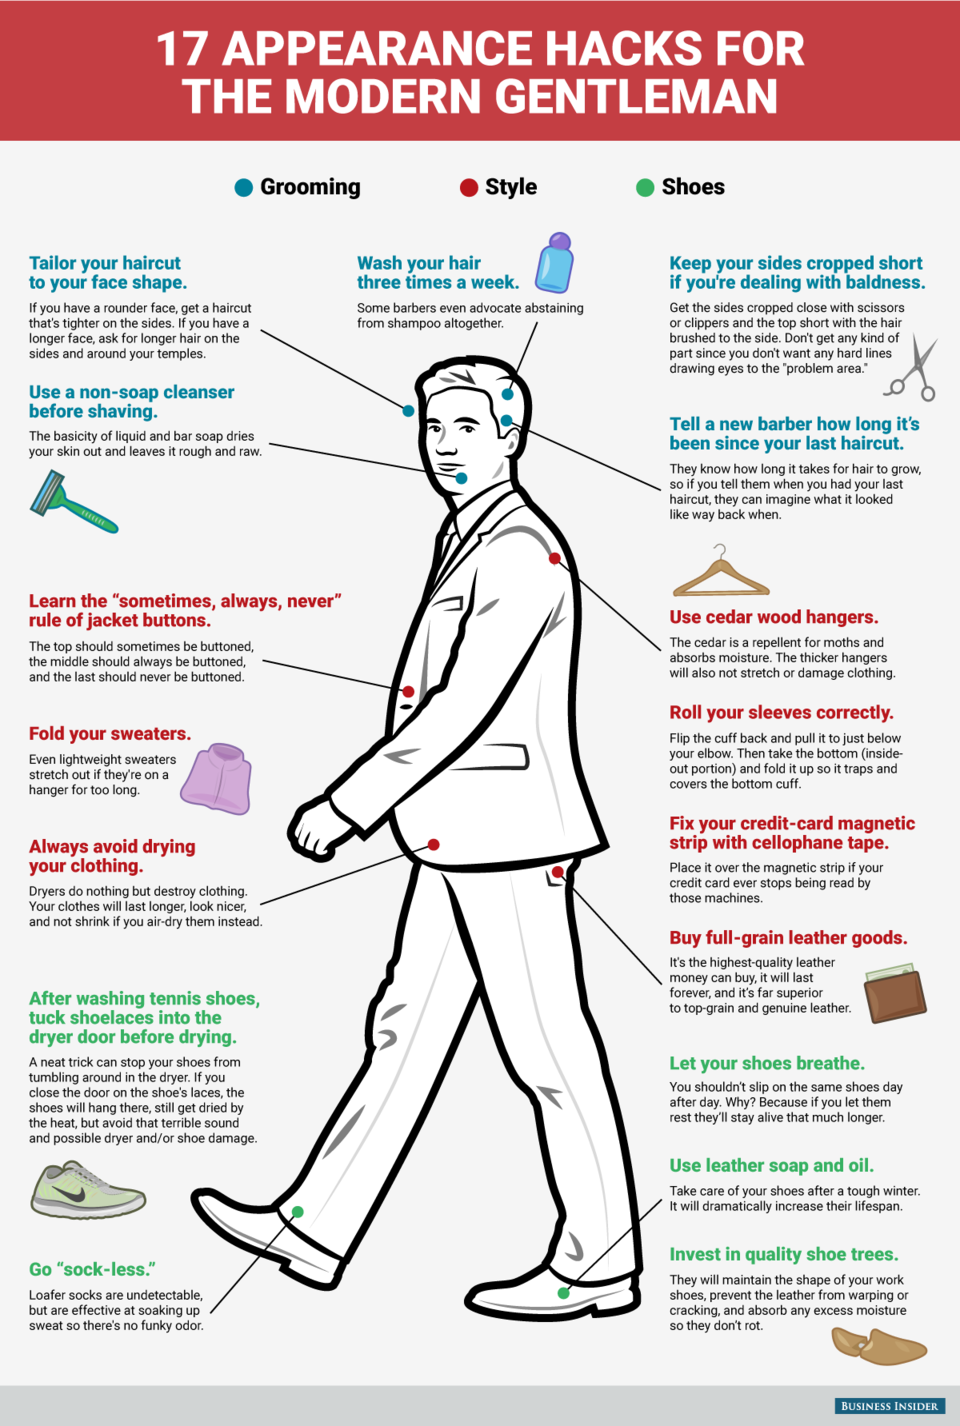 17 Style And Grooming Hacks Every Gentleman Needs To Know